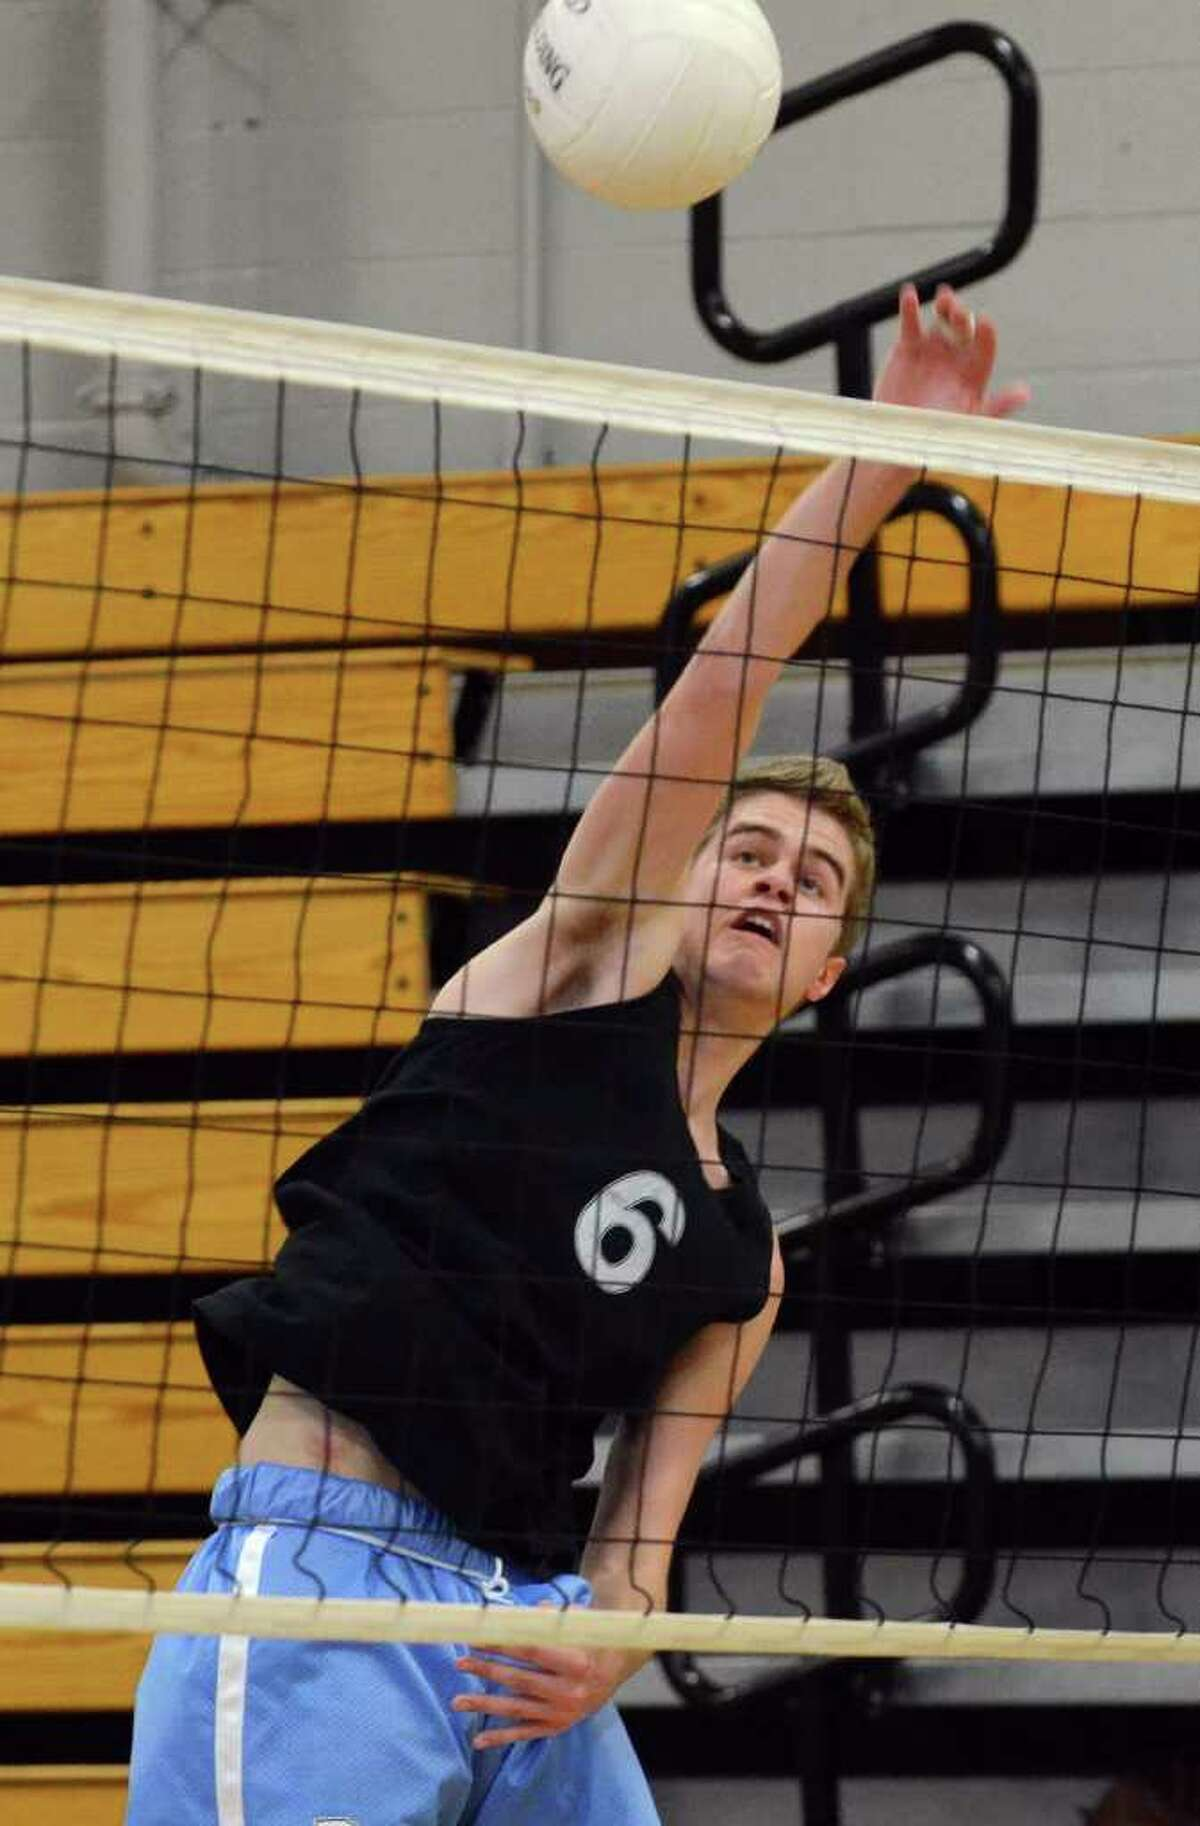 Darien's Calder Billhardt makes a kill against Staples during the boys volleyball FCIAC championship match at Fairfield Ludlowe on Friday, May 27, 2011.